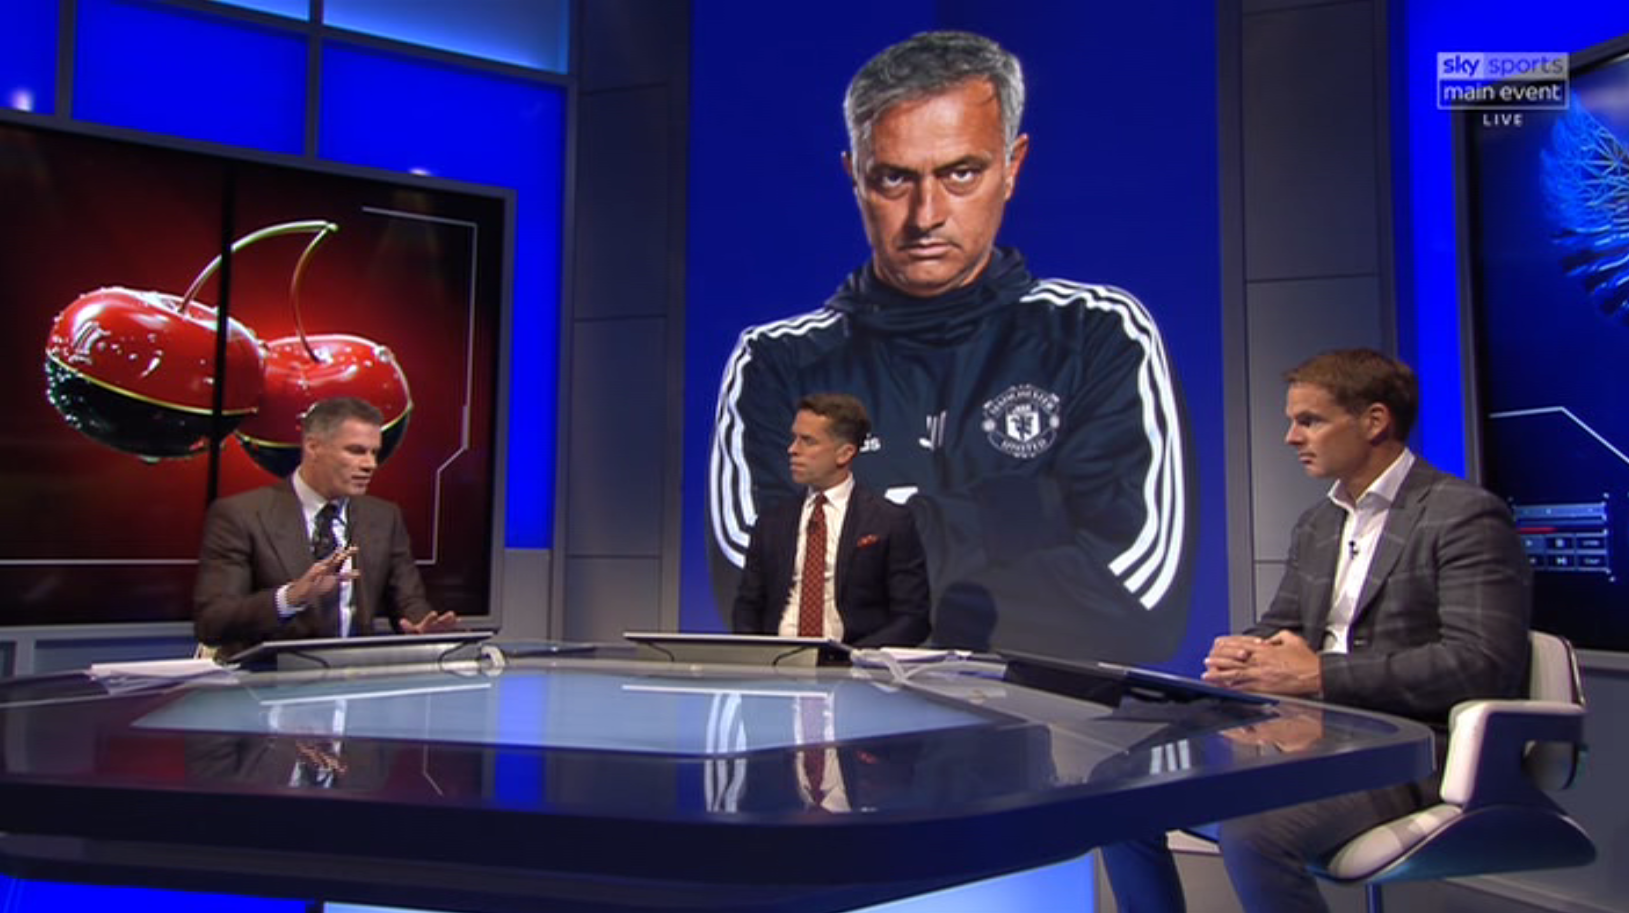 Carragher spoke openly about United's troubles